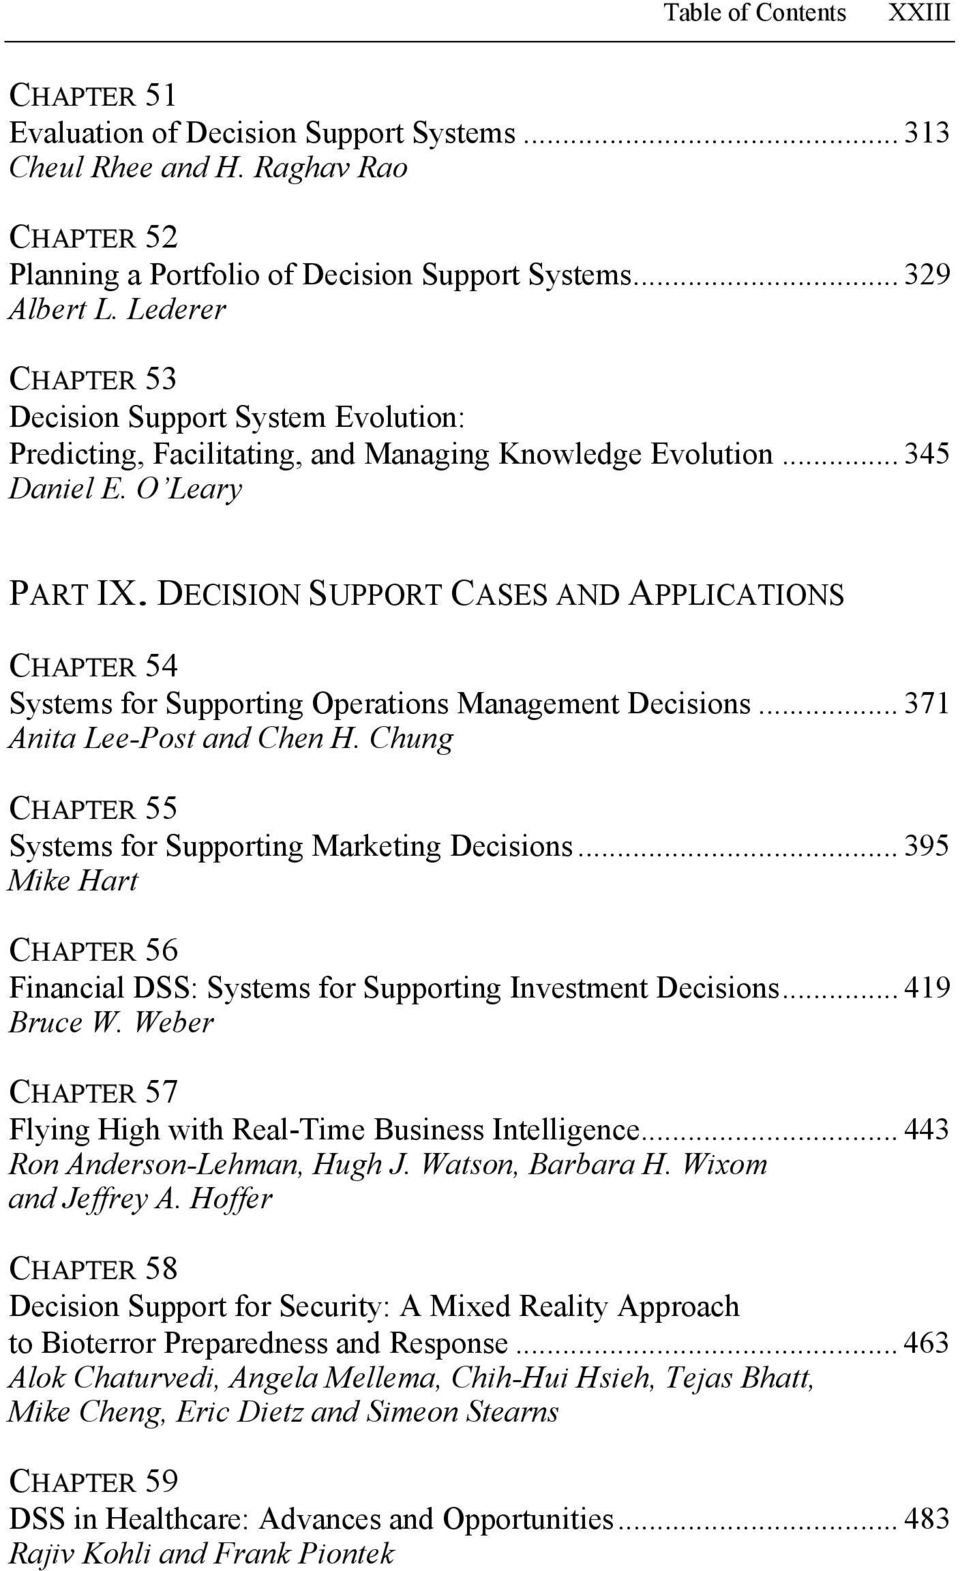 DECISION SUPPORT CASES AND APPLICATIONS CHAPTER 54 Systems for Supporting Operations Management Decisions... 371 Anita Lee-Post and Chen H. Chung CHAPTER 55 Systems for Supporting Marketing Decisions.